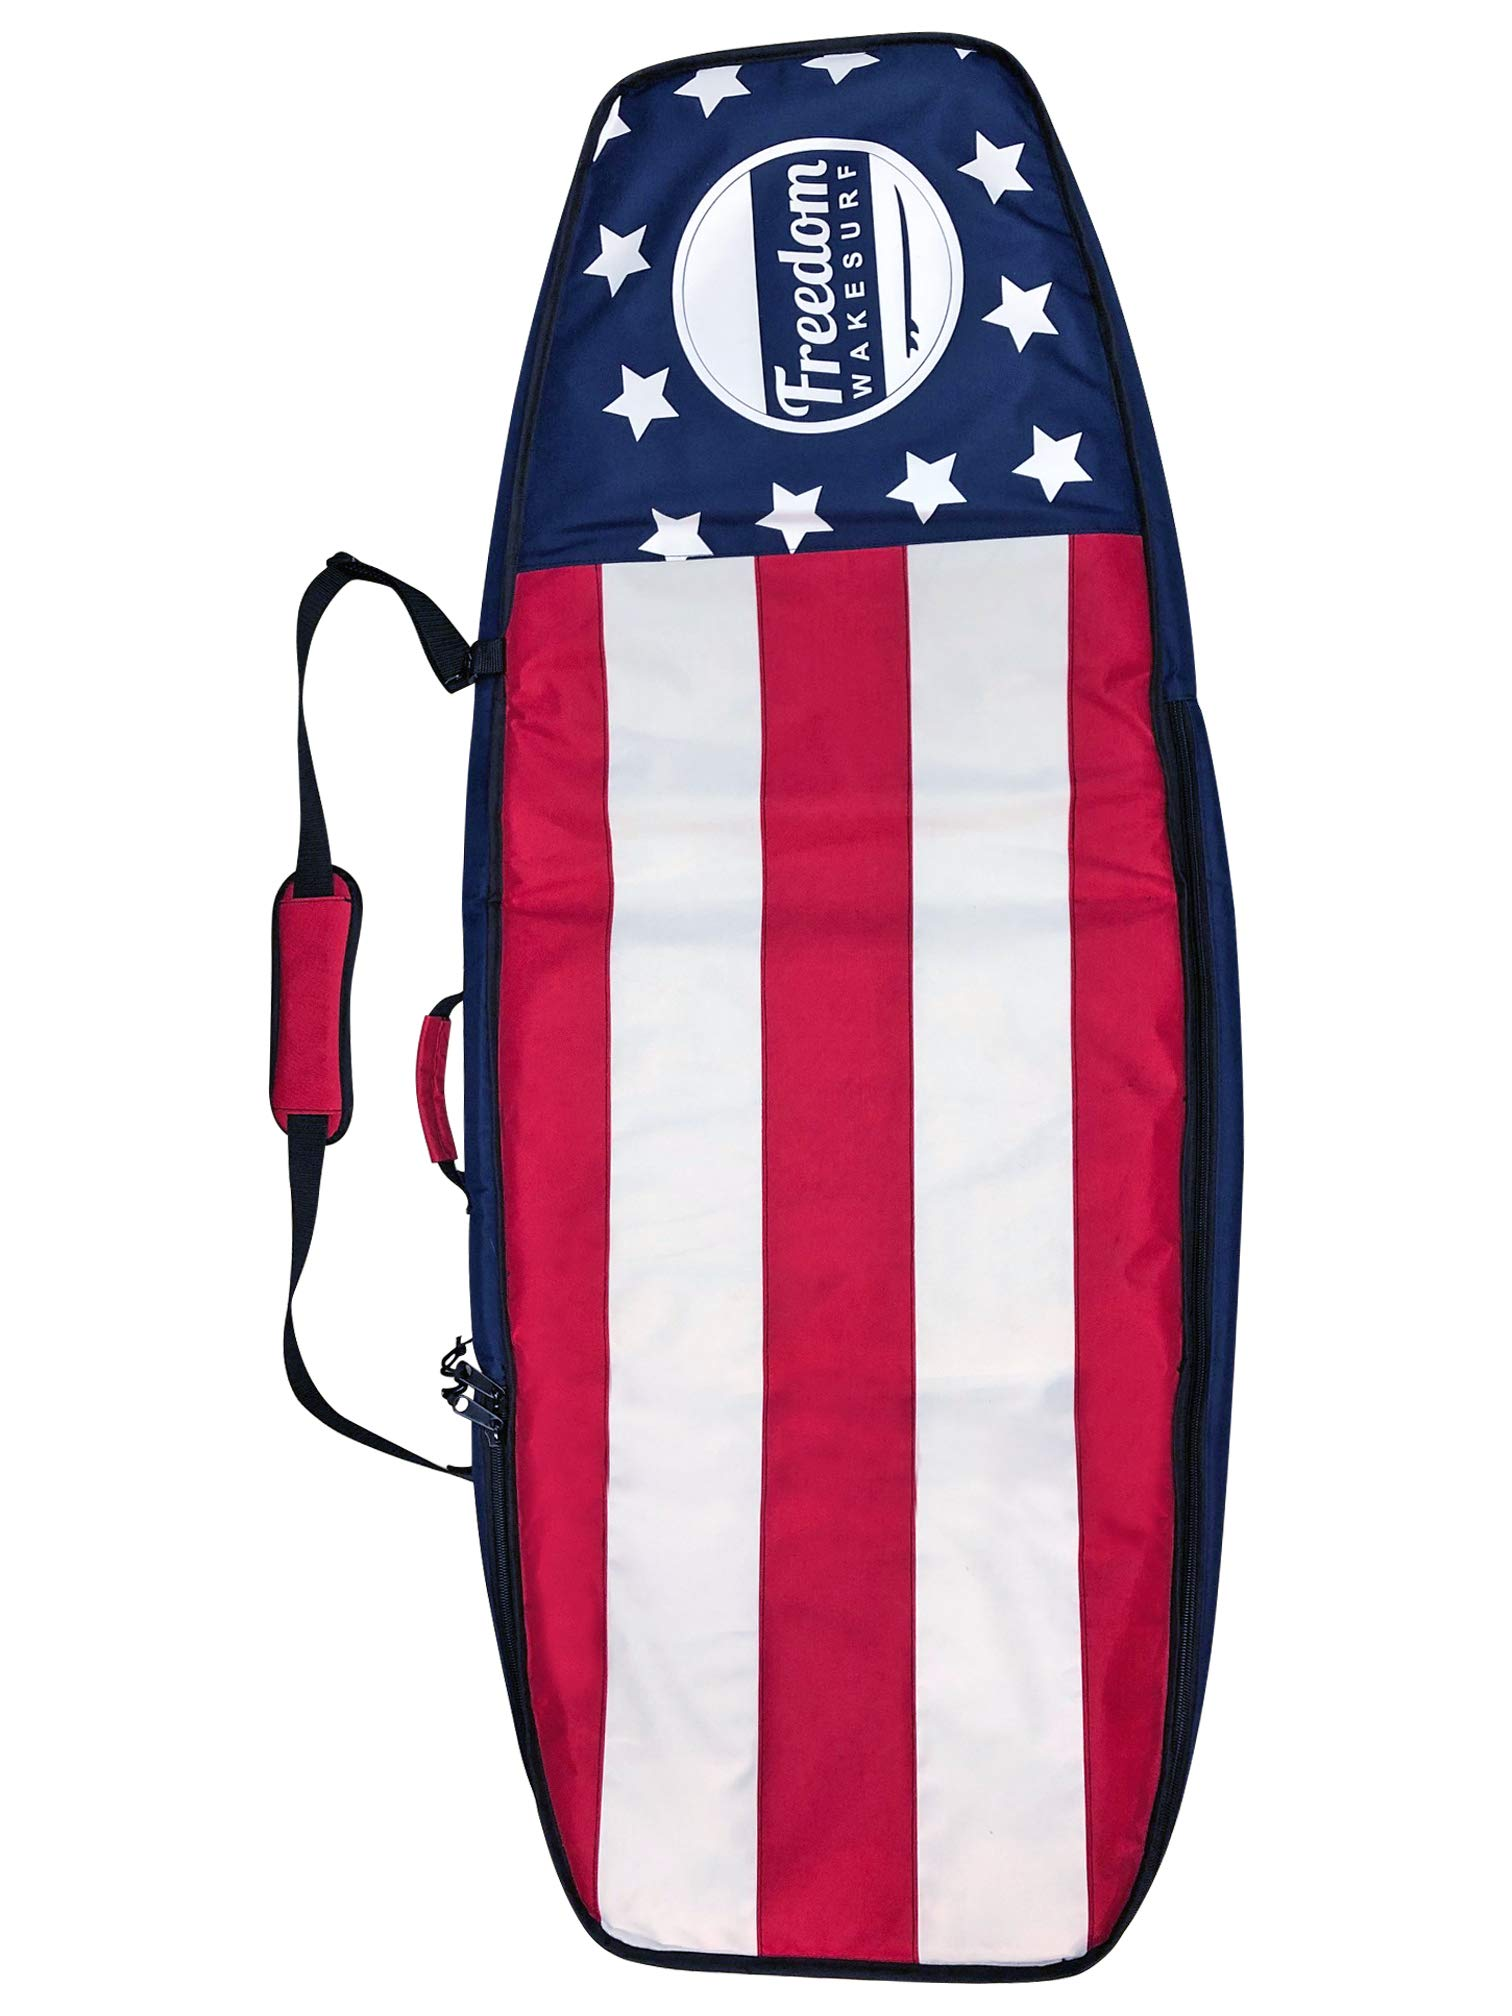 freedom wakesurf Double Surf Board Bag for 2 Surfboards Protection Surfboard Cover | Travel Surf Bag for up to 5ft Board ● with Adjustable Shoulder Strap by freedom wakesurf